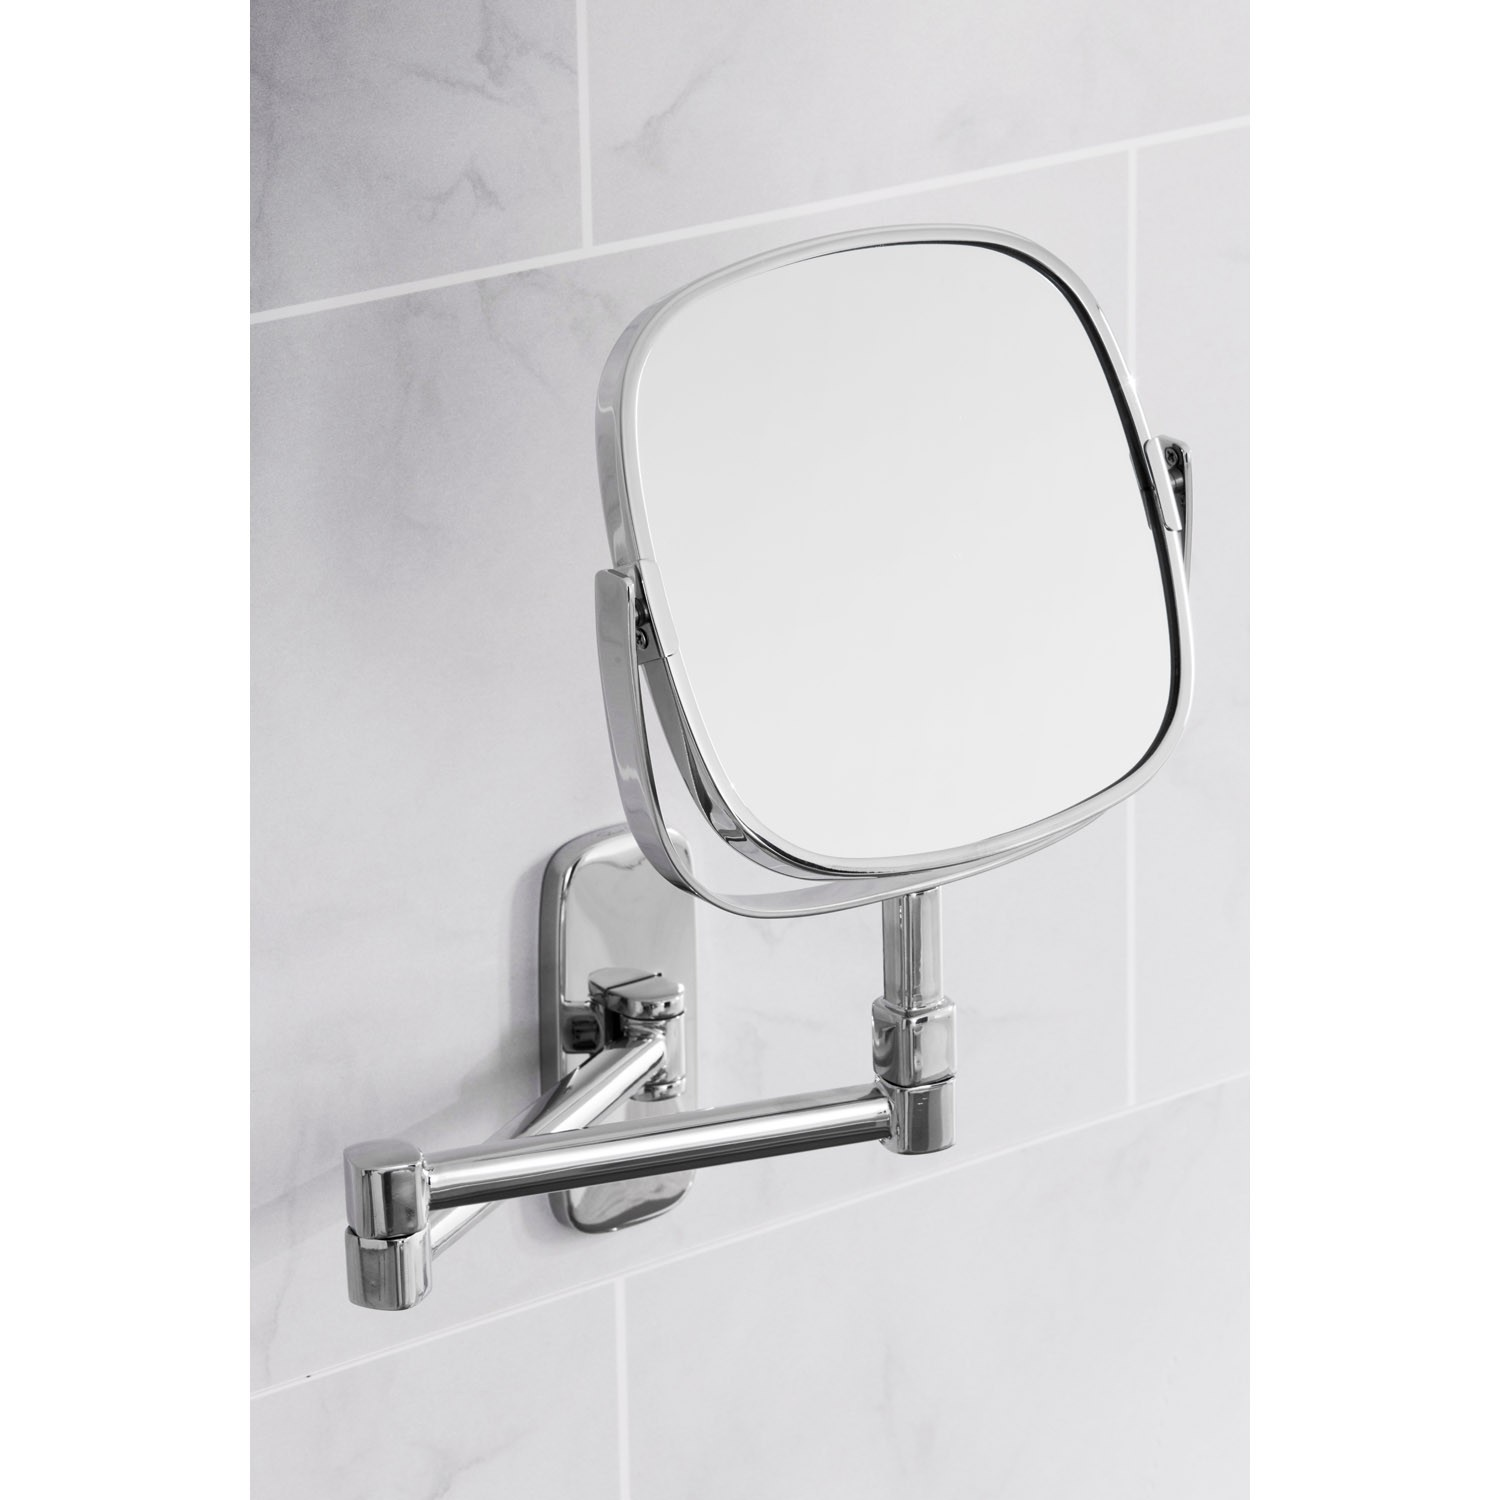 Robert Welch Burford Extending Mirror, Stainless Steel | Lee